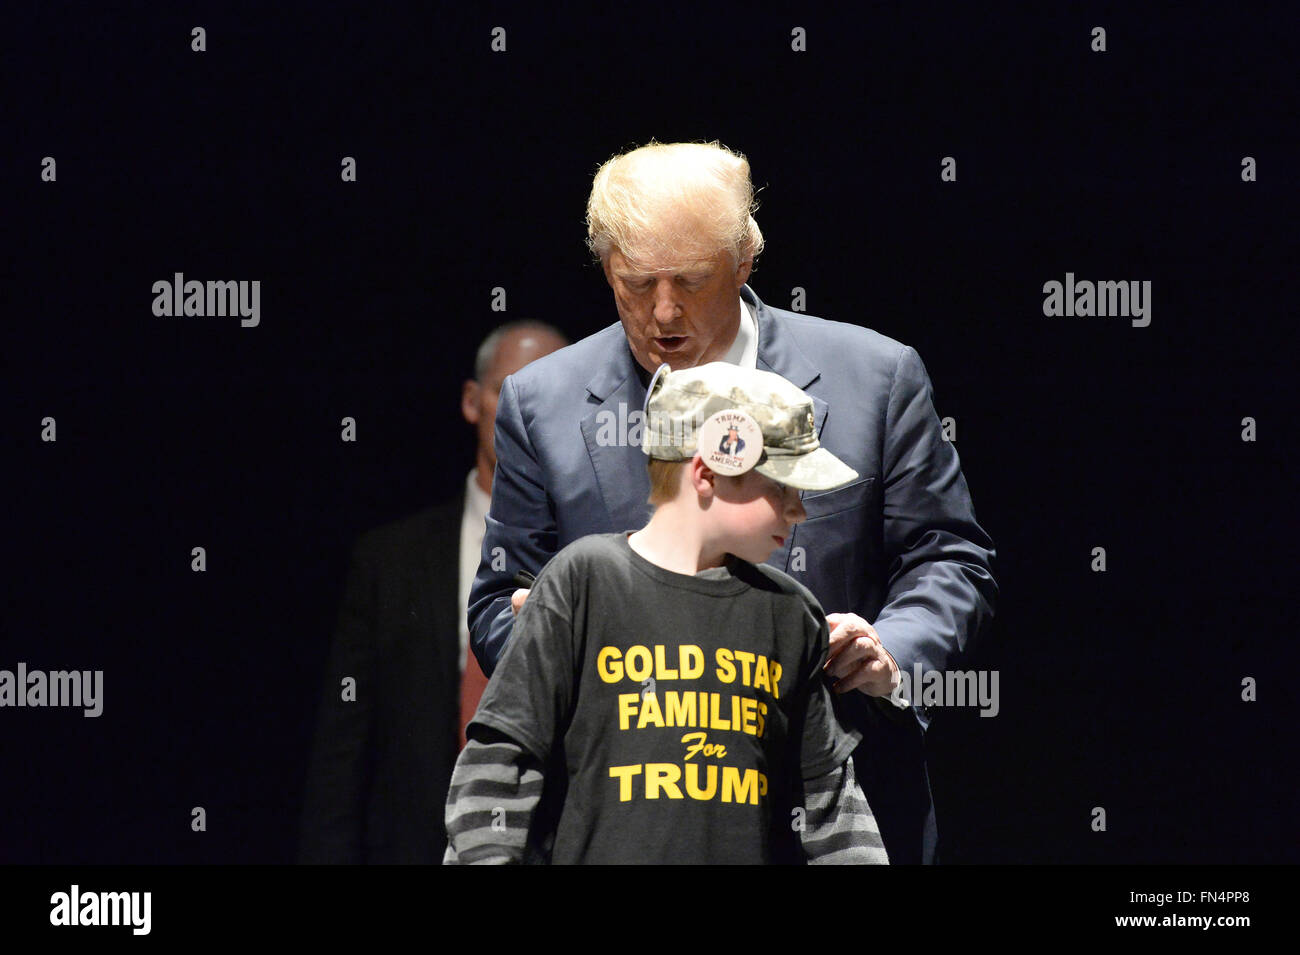 Saint Louis, MO, USA – March 11, 2016: Donald Trump signs shirt of boy at the Peabody Opera House in Downtown Saint - Stock Image